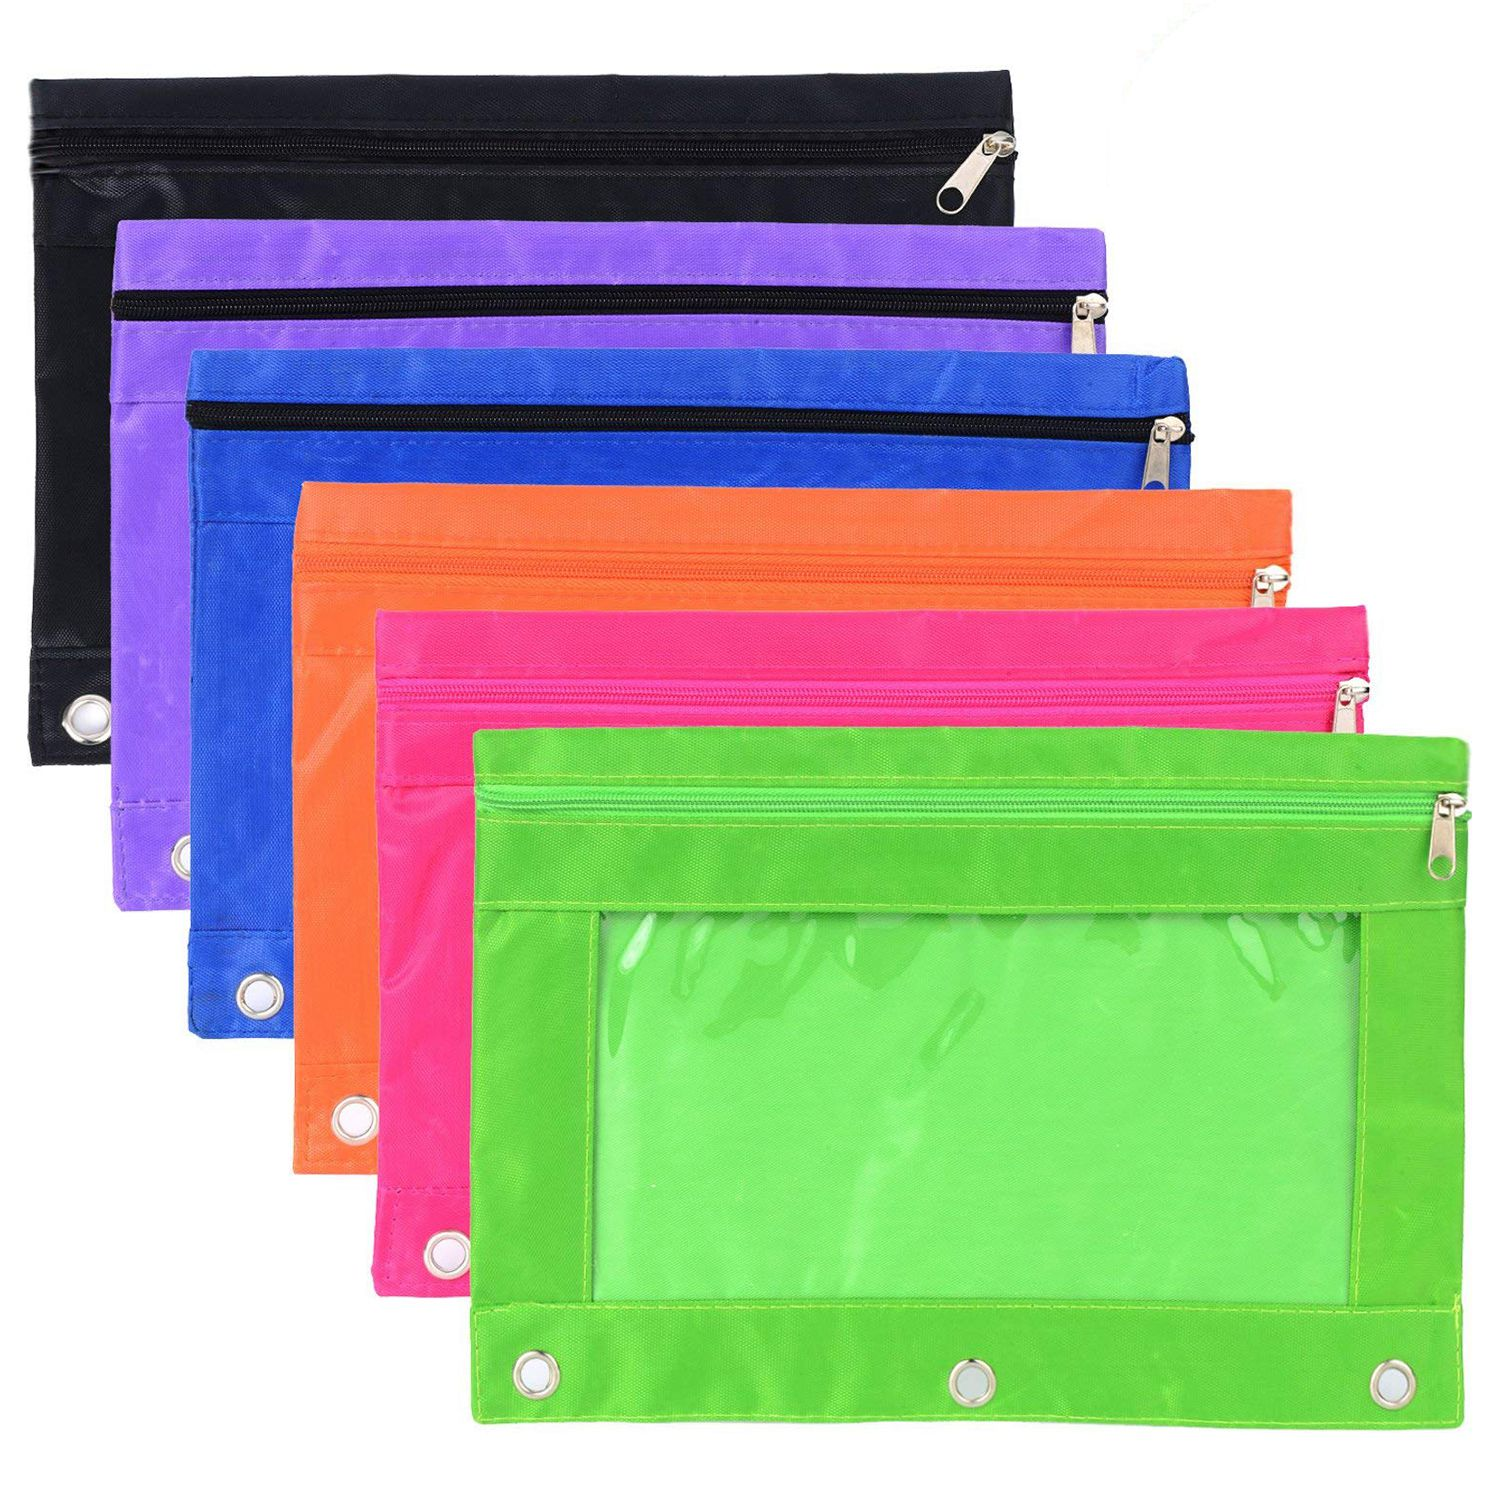 6 Pieces Ring Binder Pouch Pencil Bag with Holes 3-Ring Zipper Pouches with Clear Window (6 Colors)6 Pieces Ring Binder Pouch Pencil Bag with Holes 3-Ring Zipper Pouches with Clear Window (6 Colors)